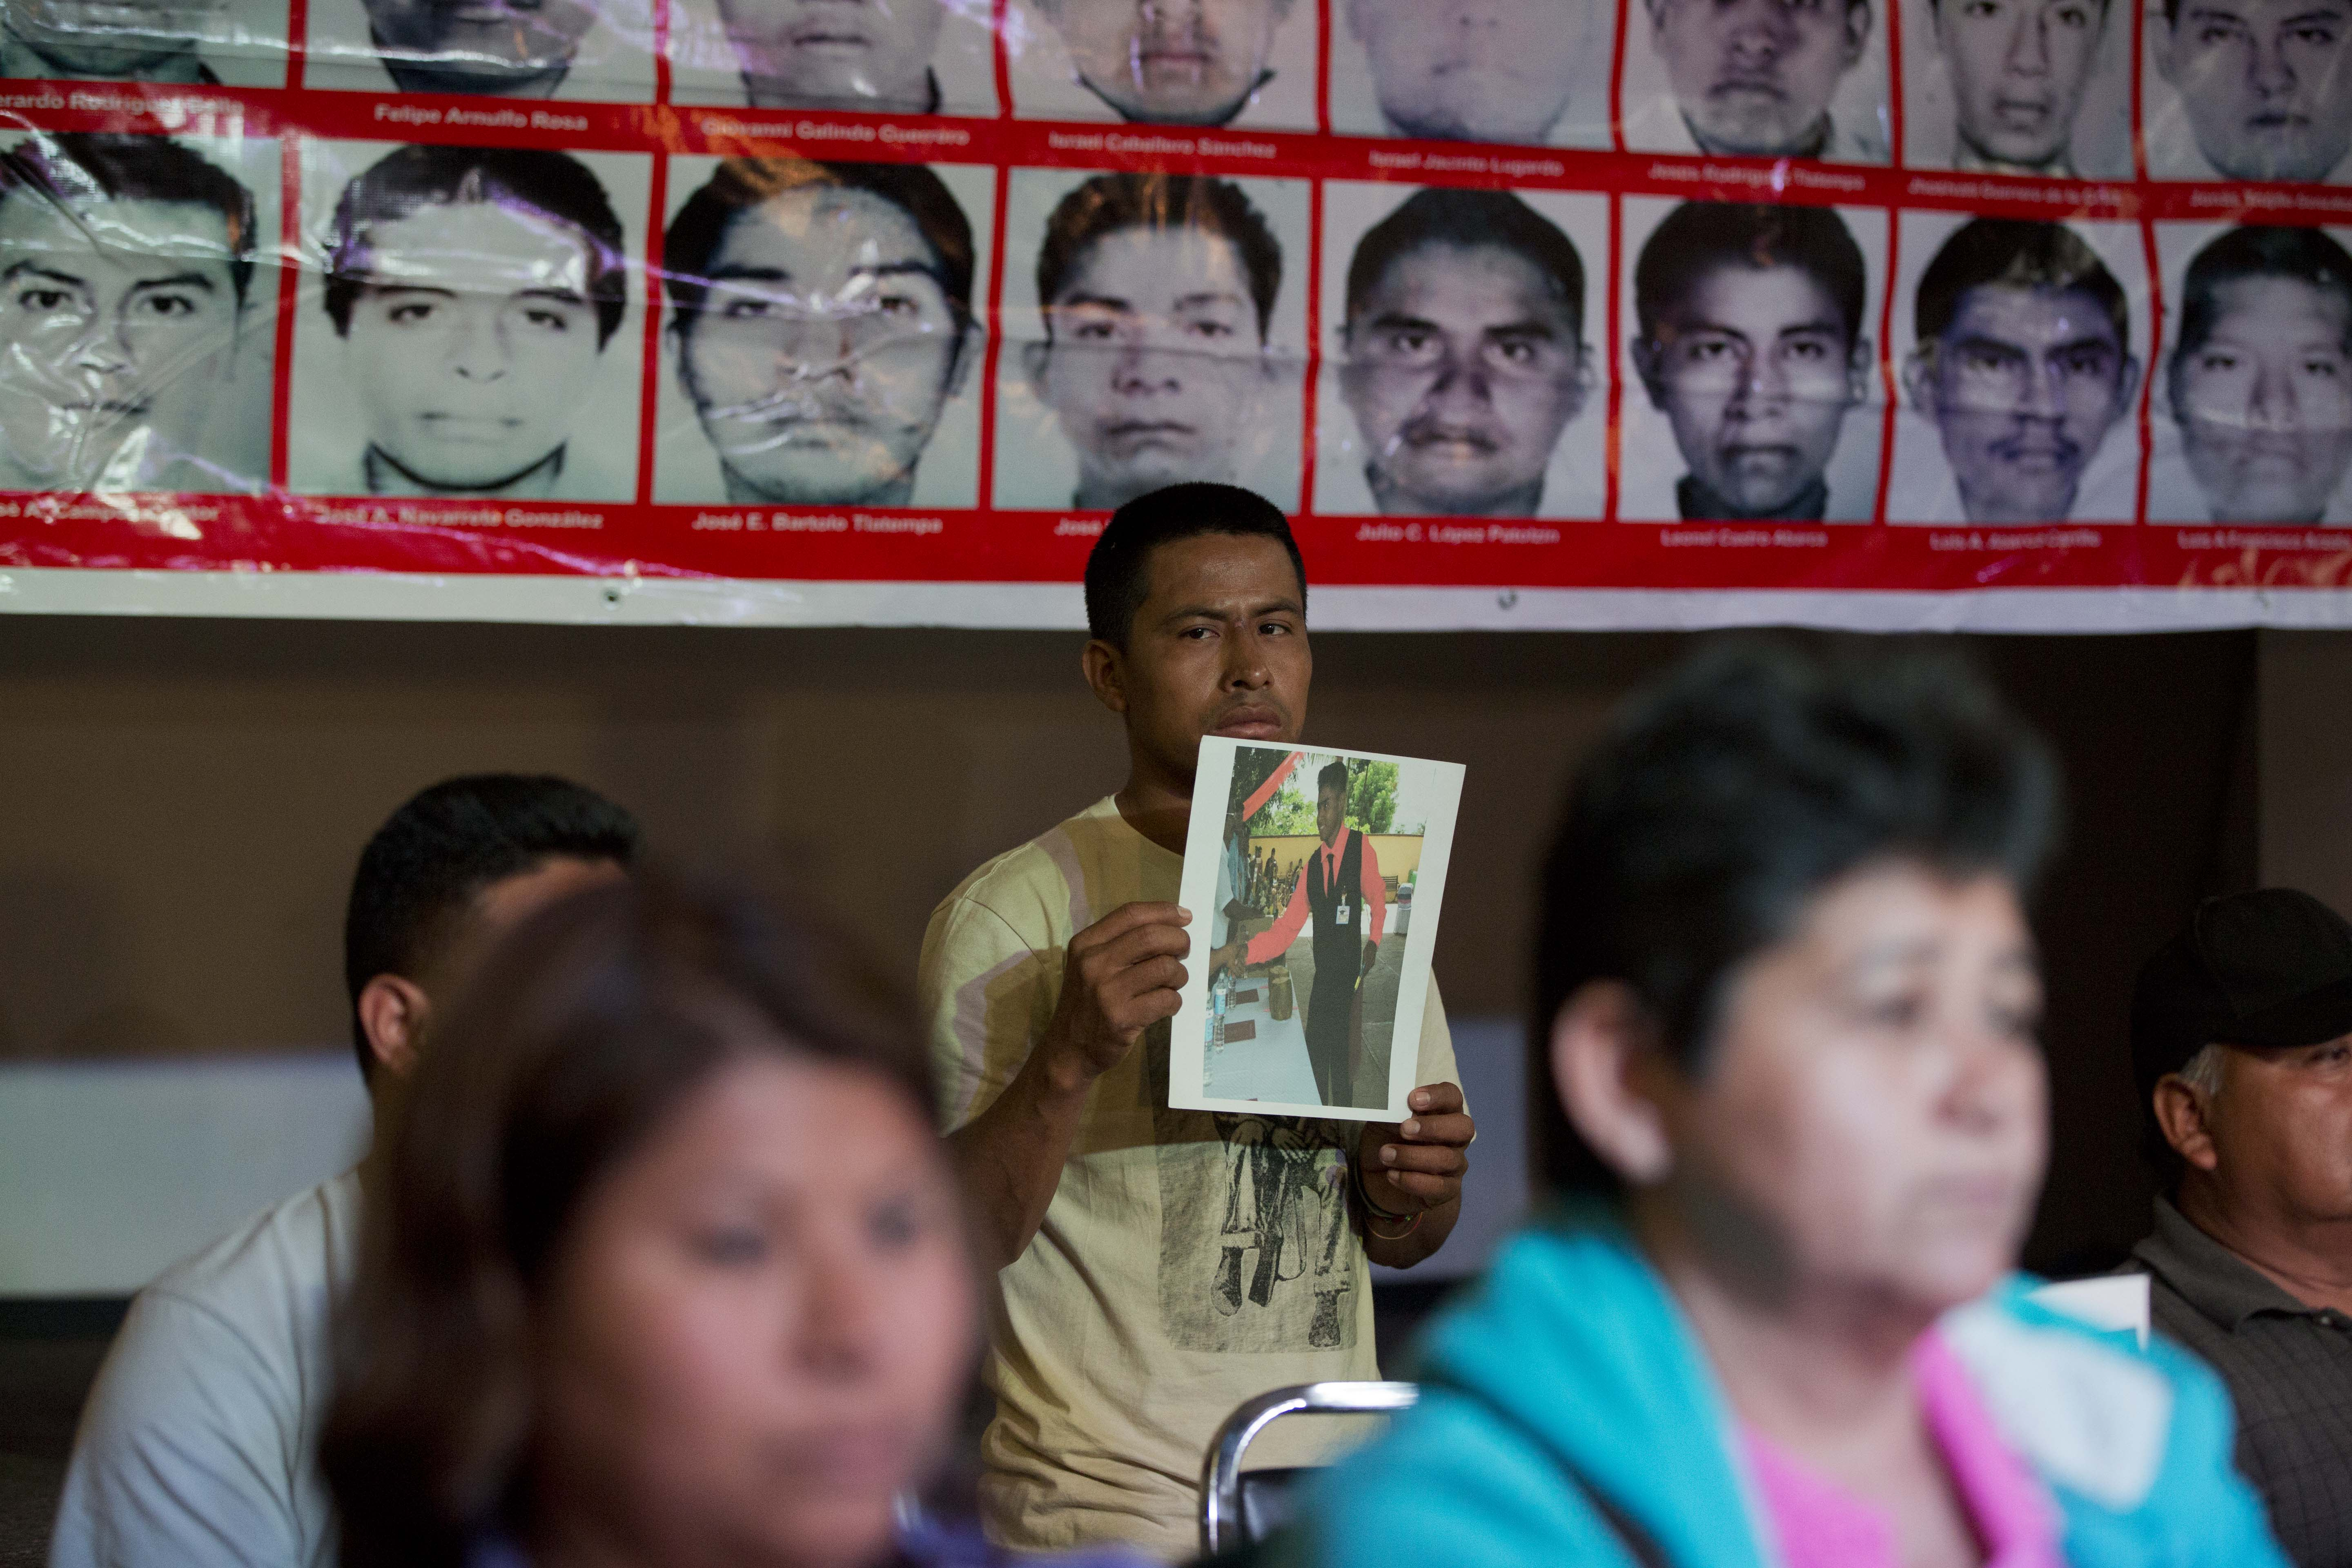 Rights groups also doubt Mexico account on missing students